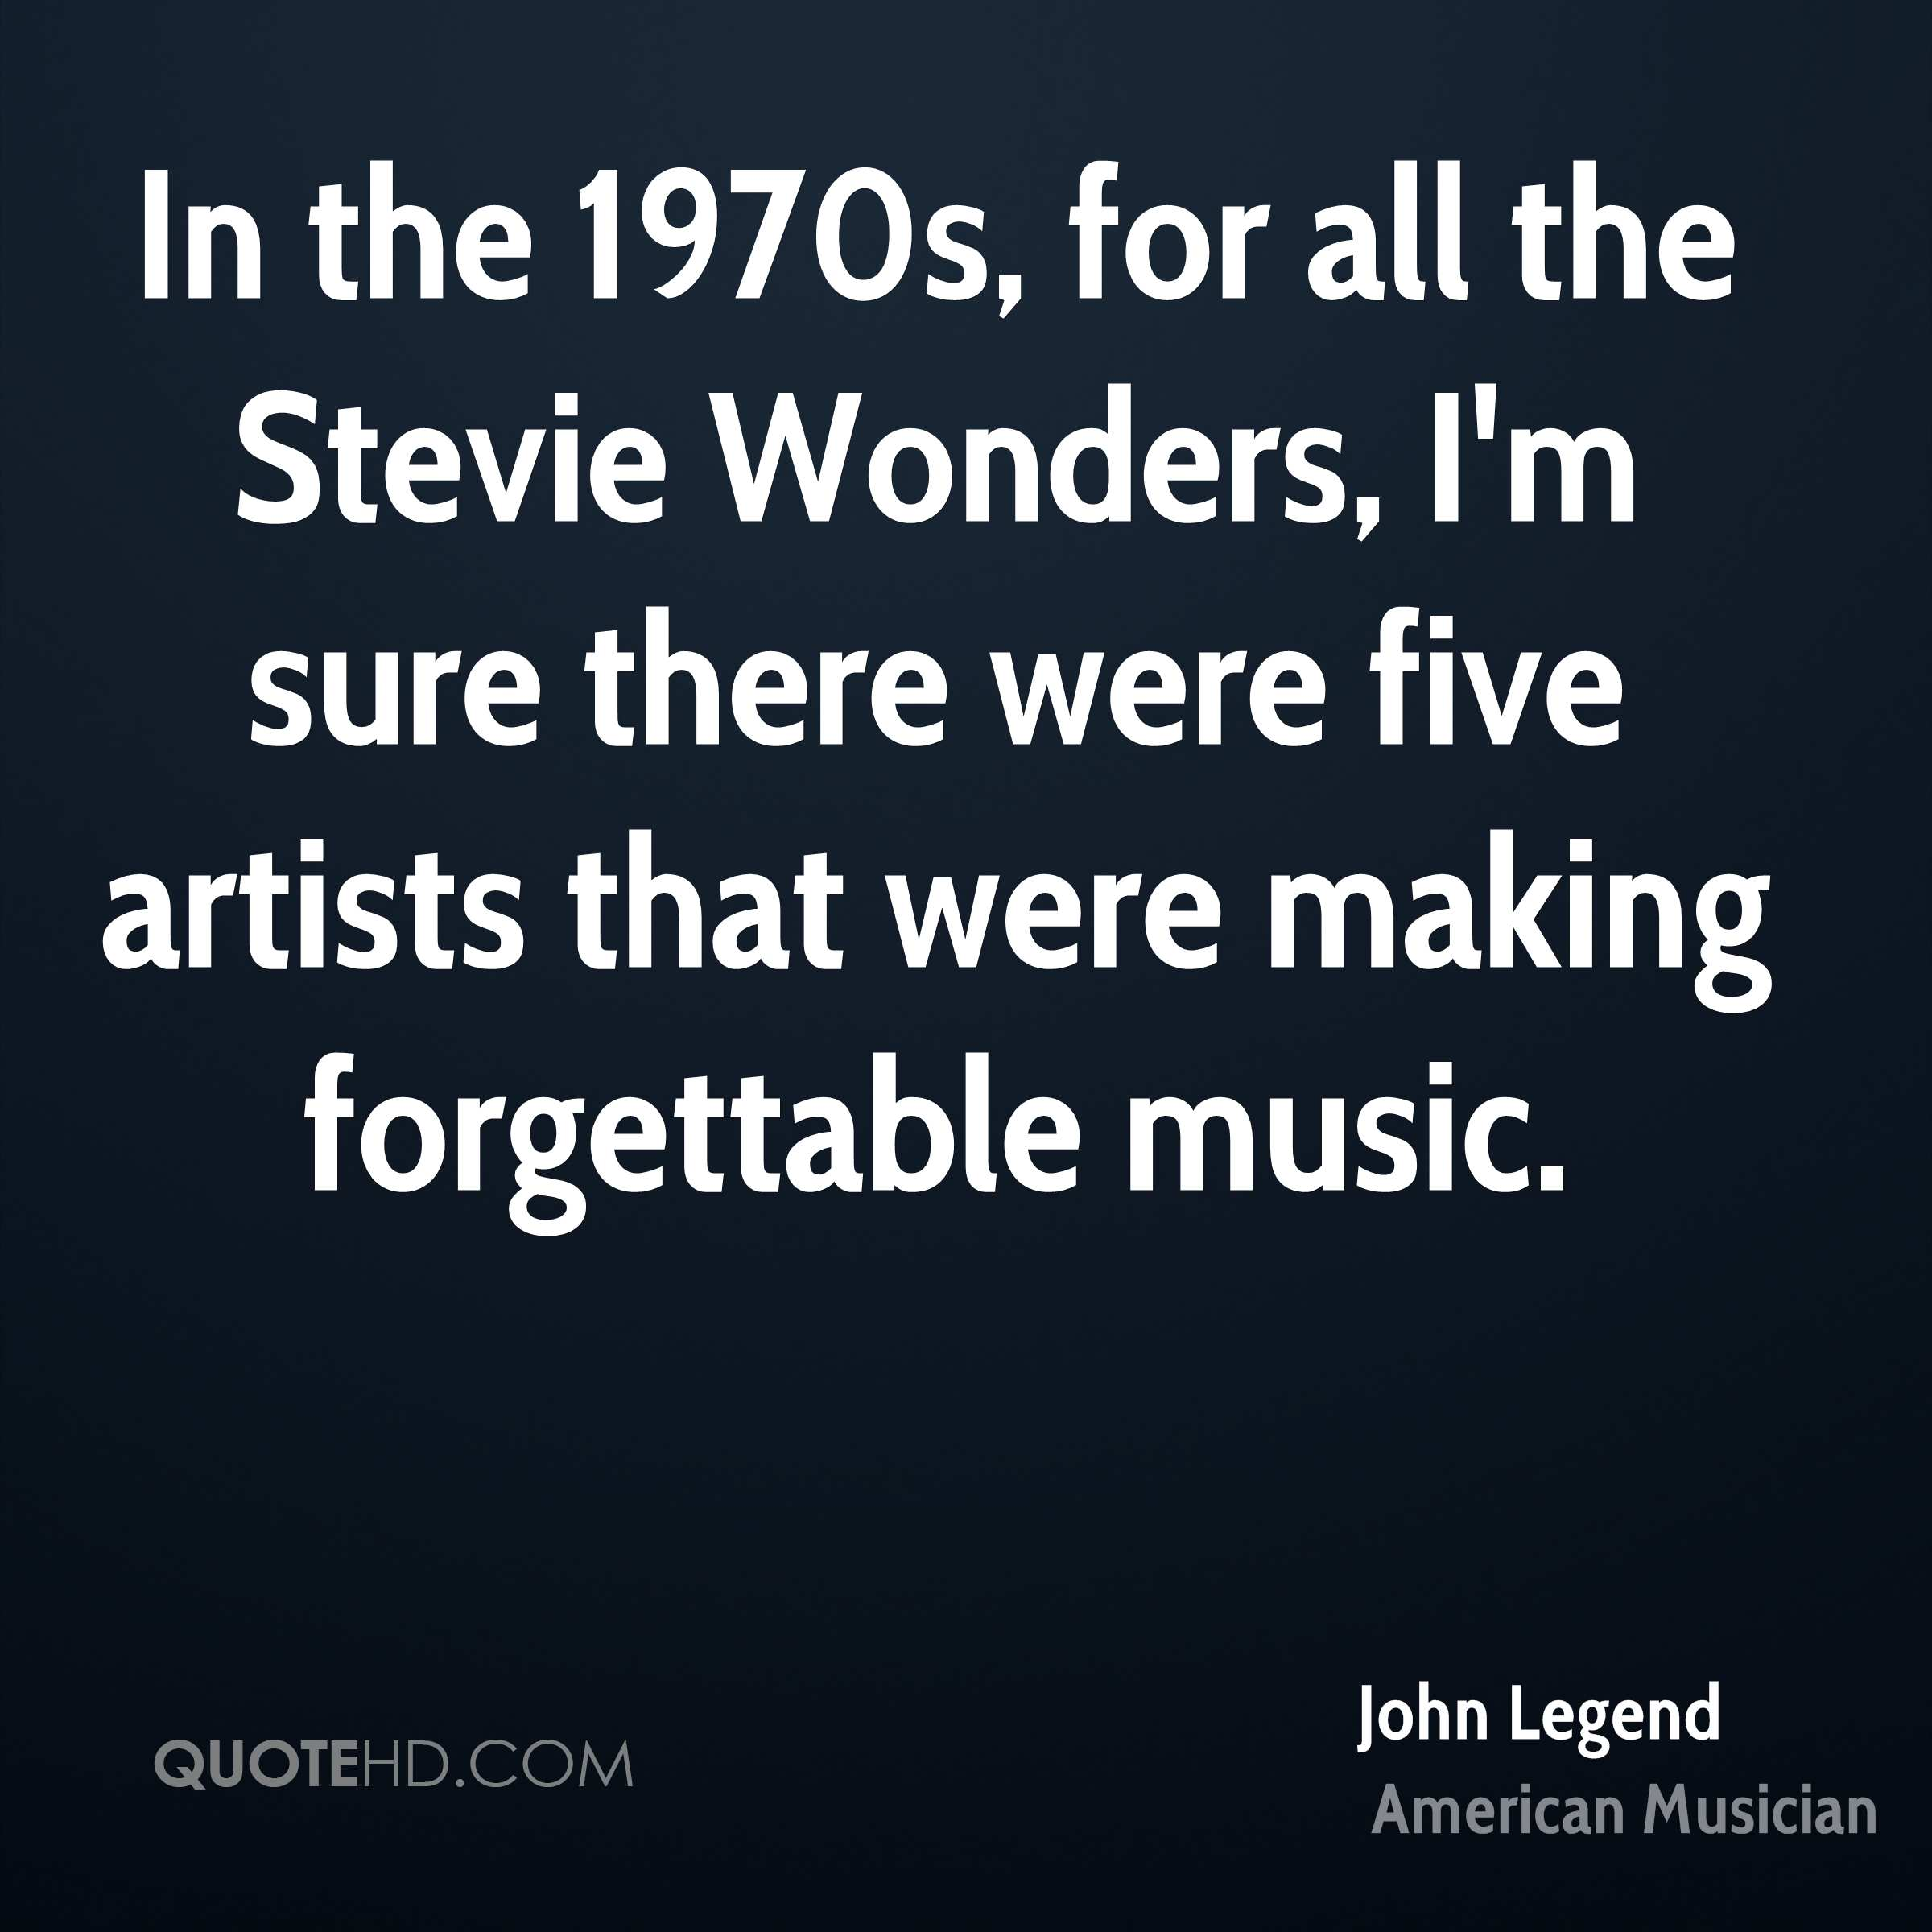 In the 1970s, for all the Stevie Wonders, I'm sure there were five artists that were making forgettable music.